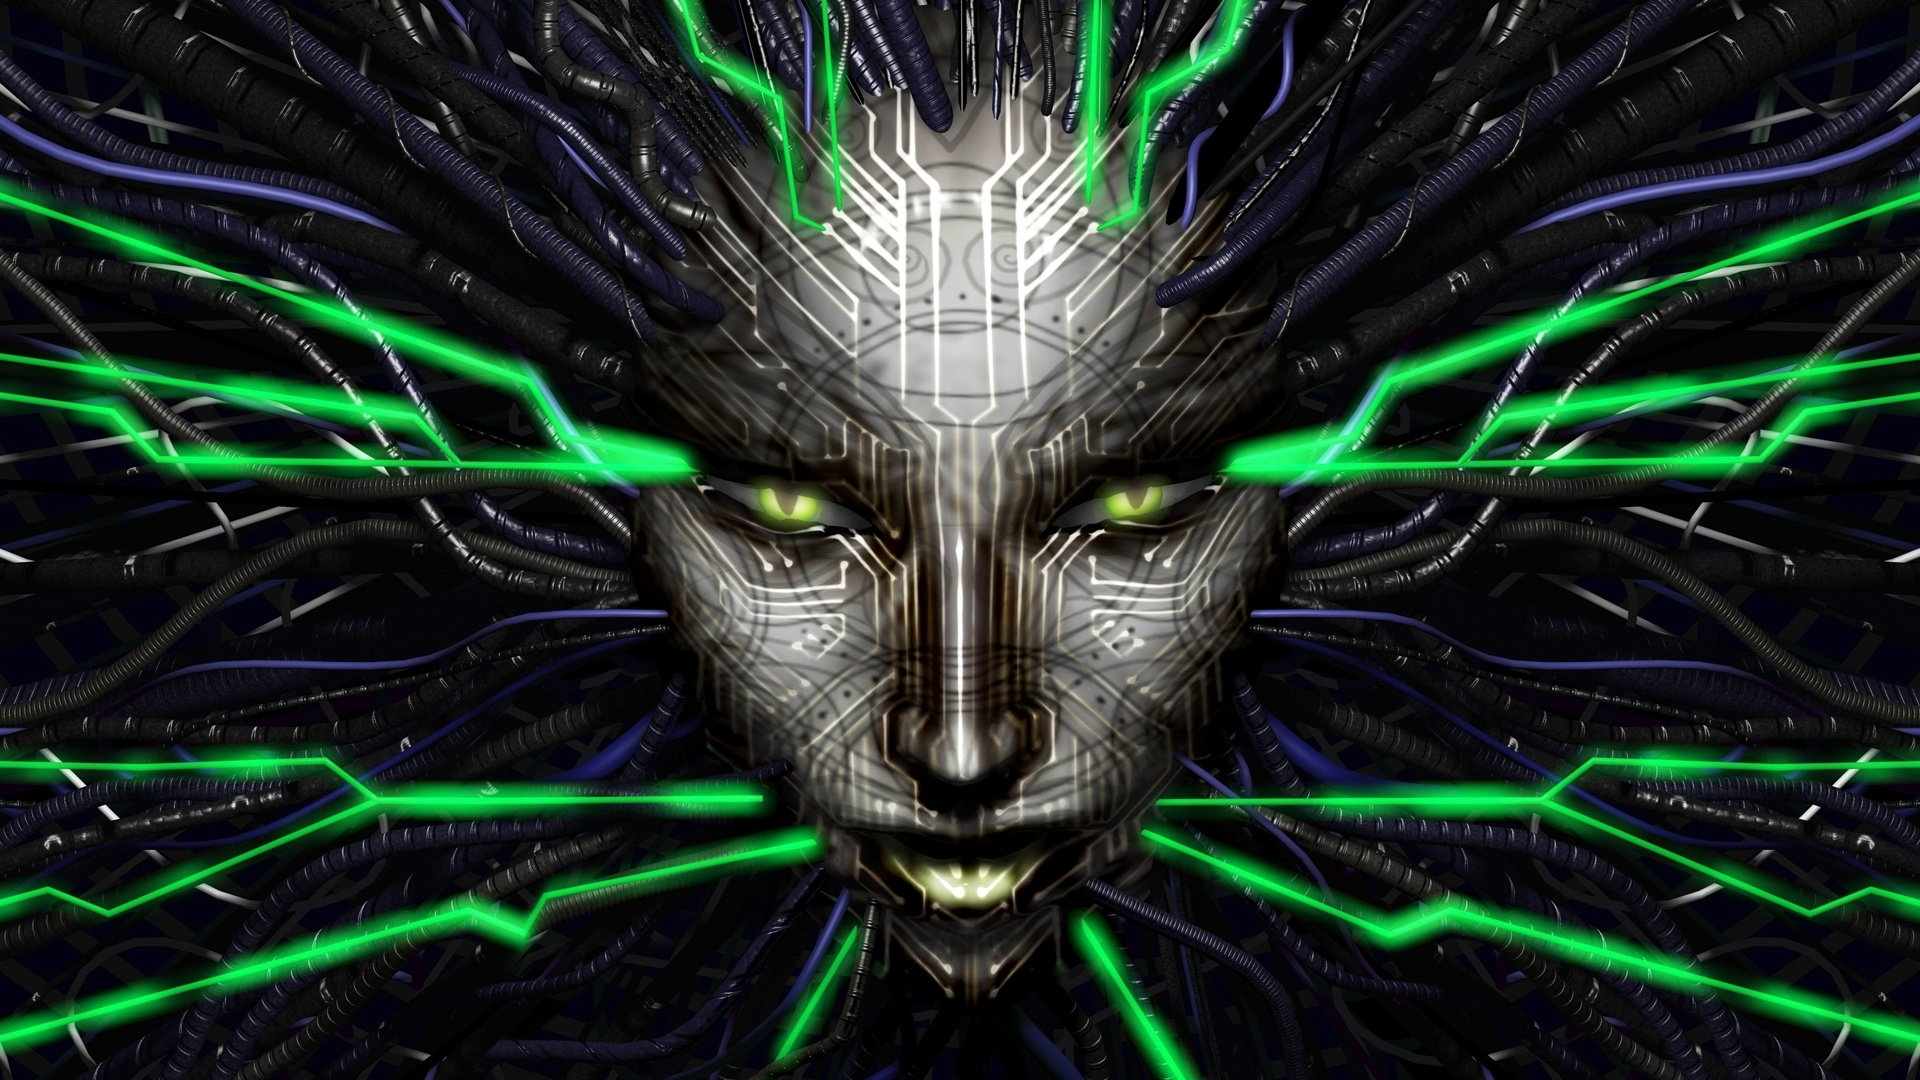 shodan from system shock 2 full hd fond d'écran and arrière-plan